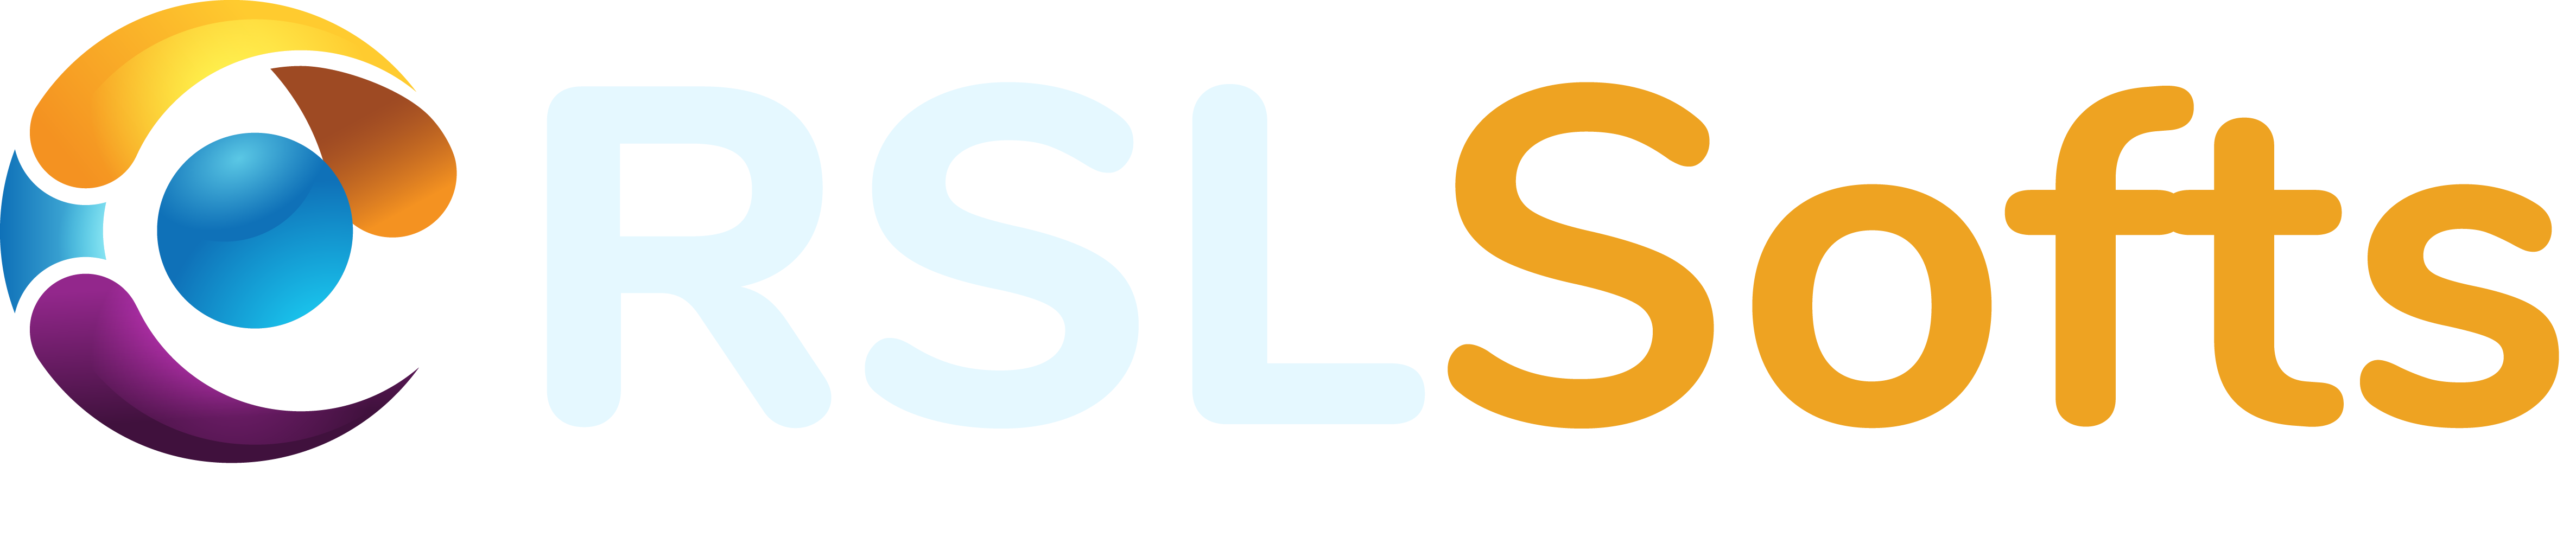 RSL-Softs-logo